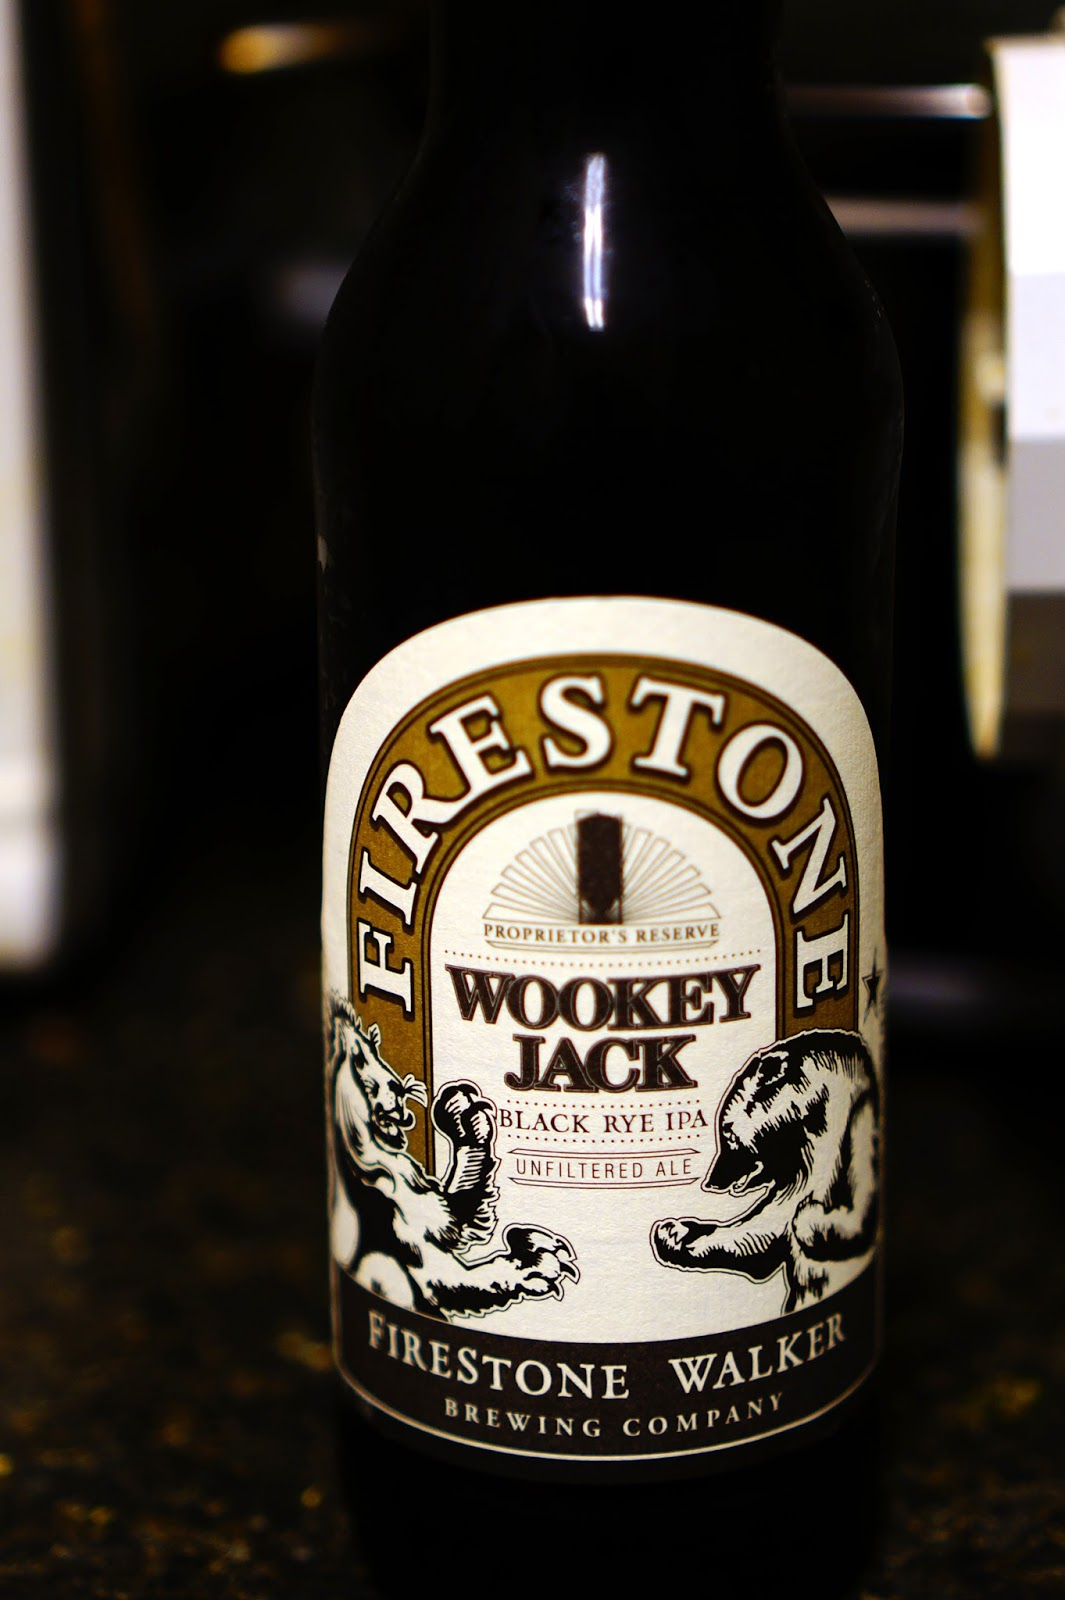 Firestone Walker Wookey Jack bottle